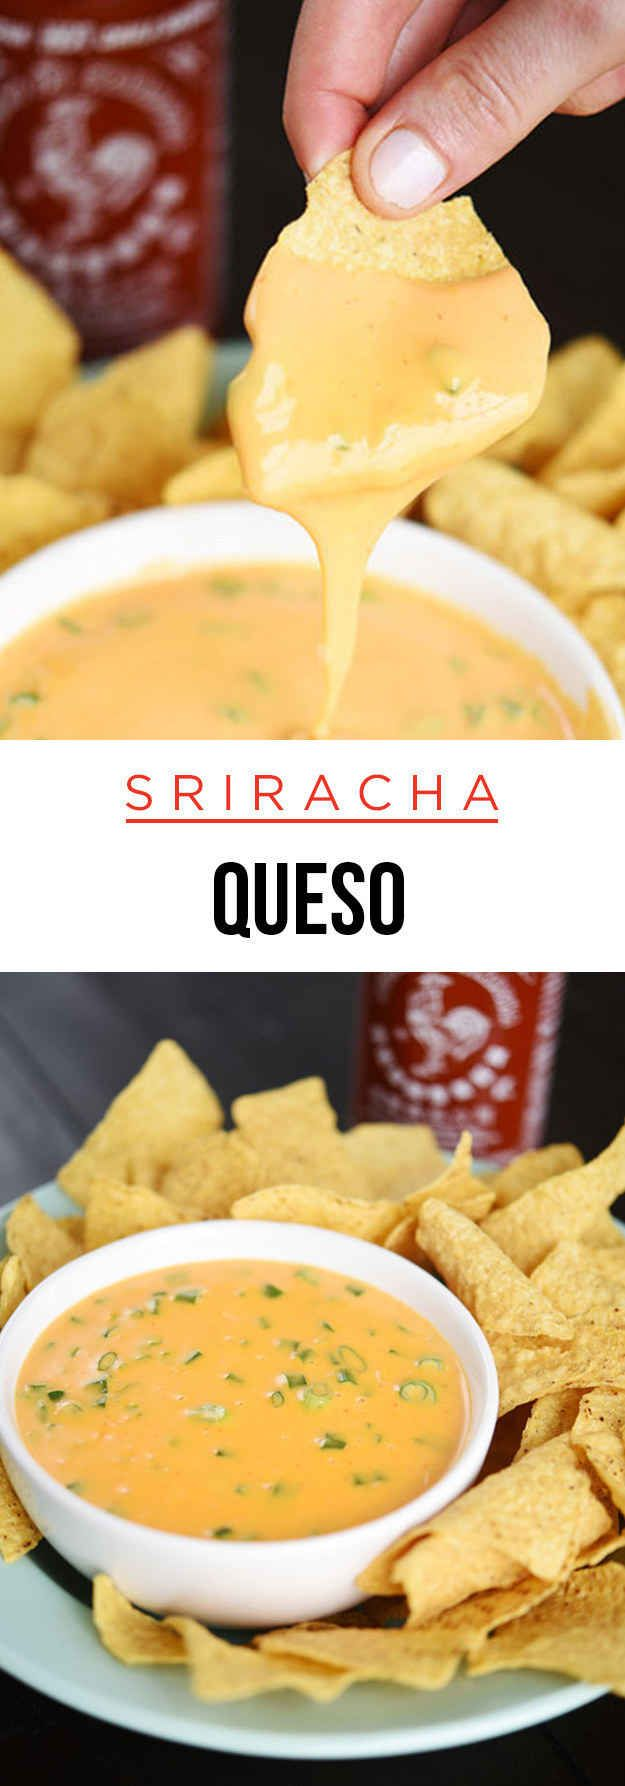 96 Best Snacks Camilan Images On Pinterest Simple Recipes Kerupuk Kemplang Ikan By Ff Pgp Sriracha Queso